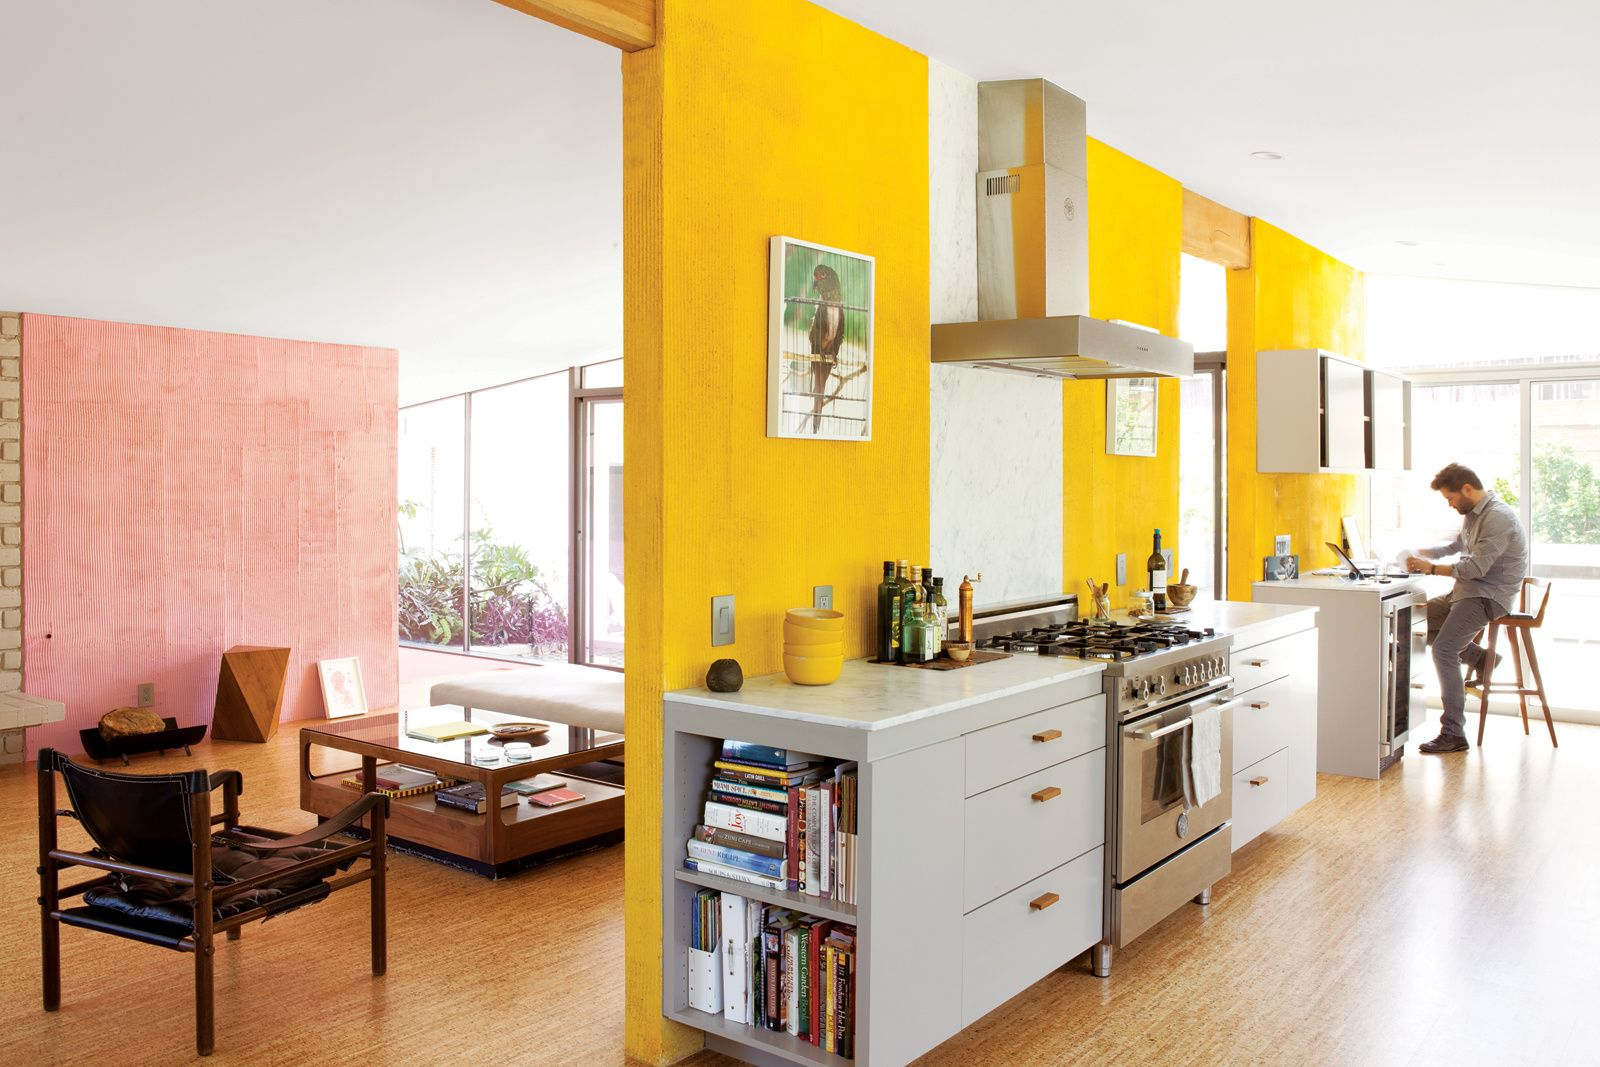 The kitchen of the Devis-Purdy house in Los Angeles features dual ...